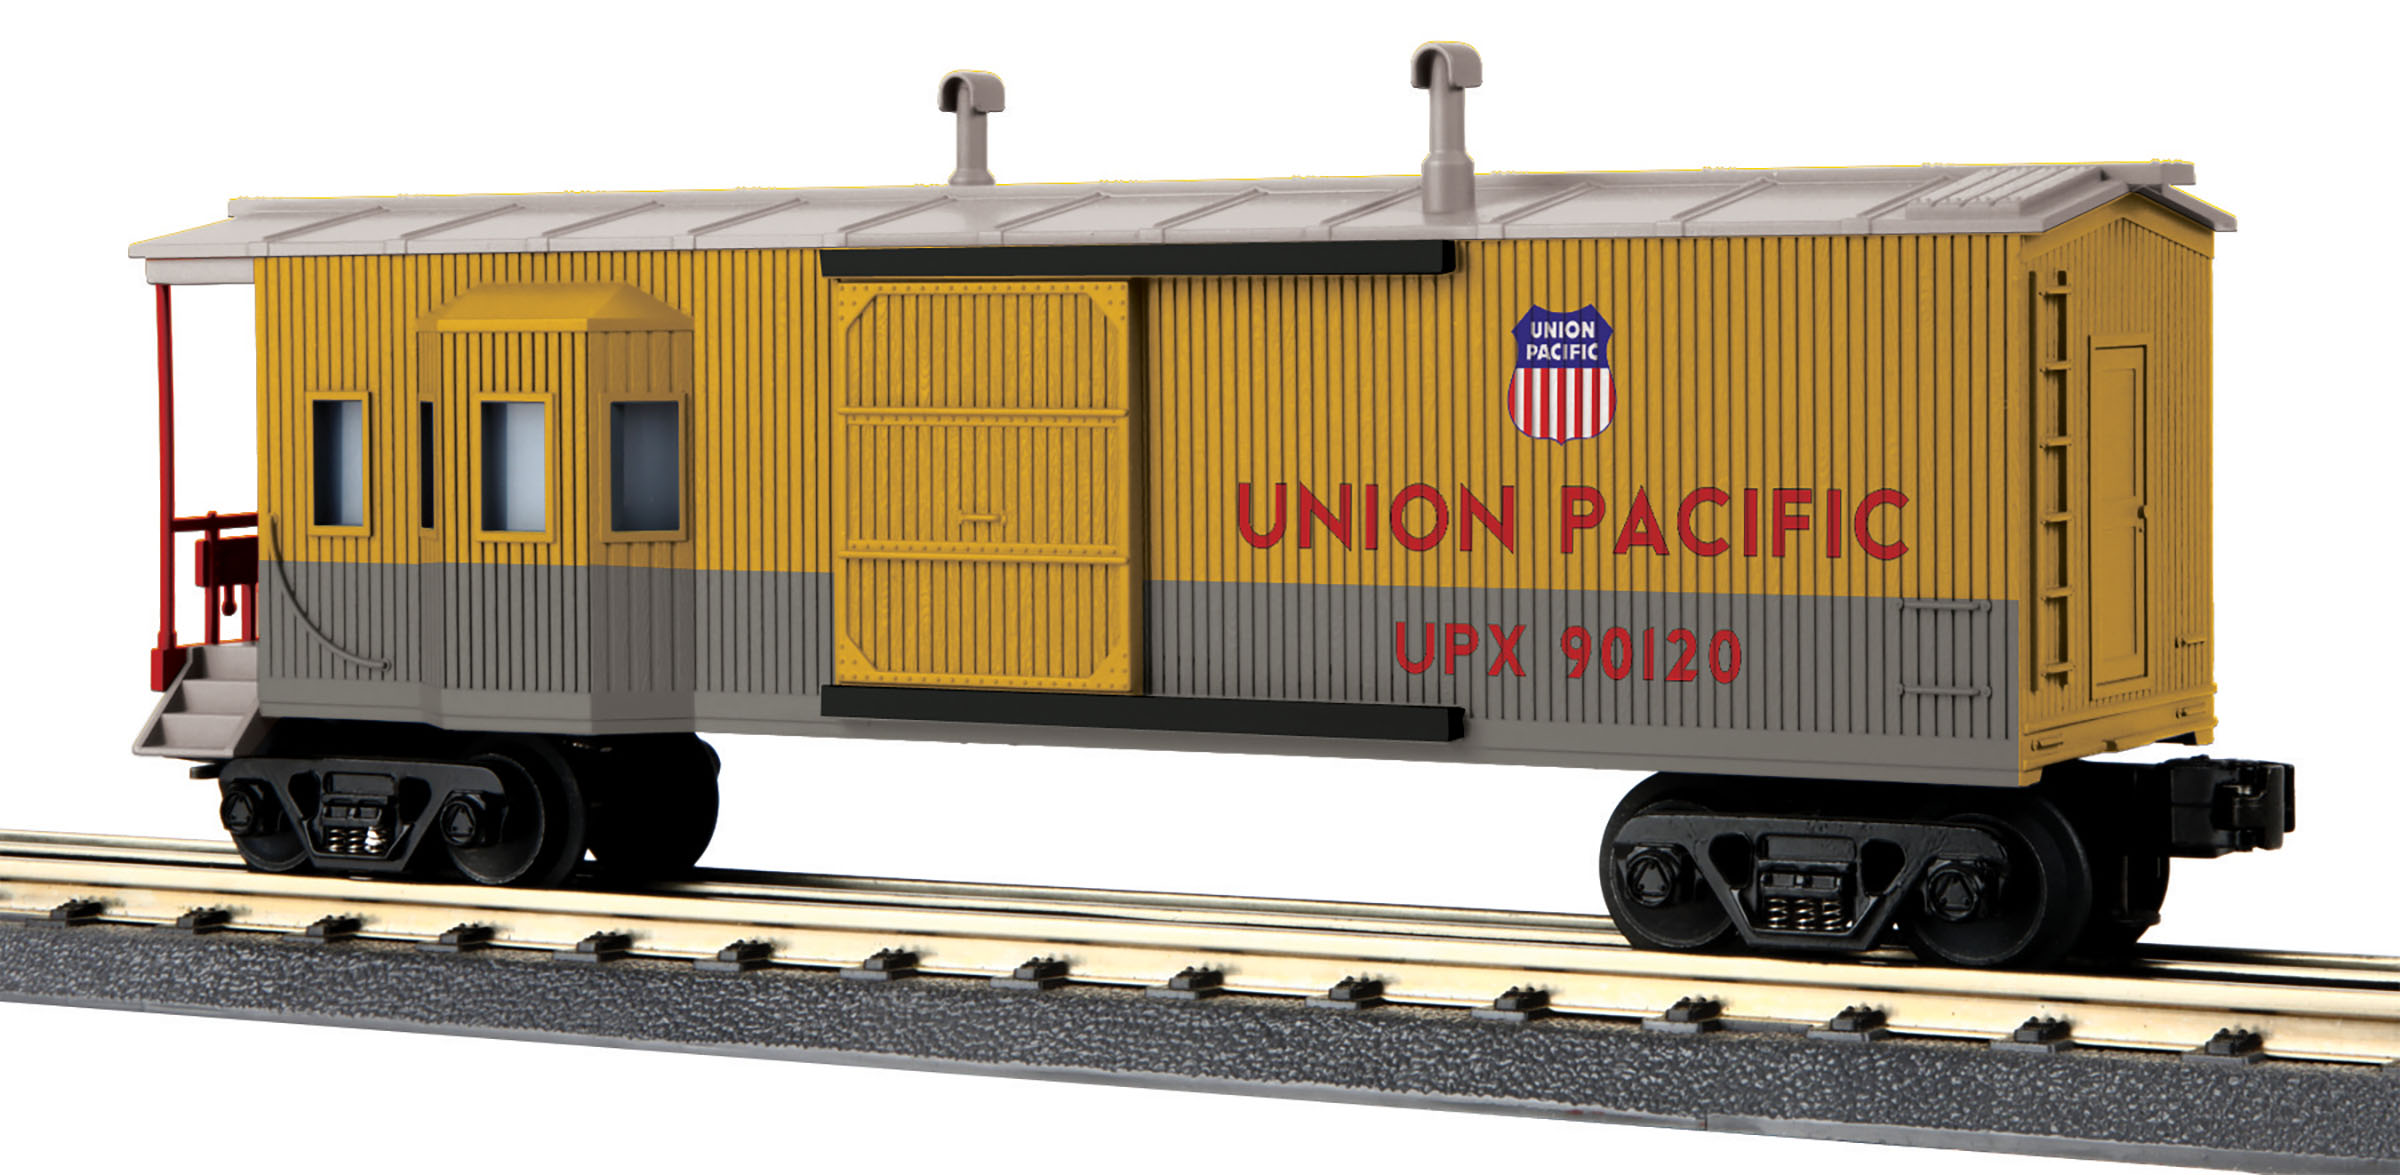 Union Pacific Work Caboose image